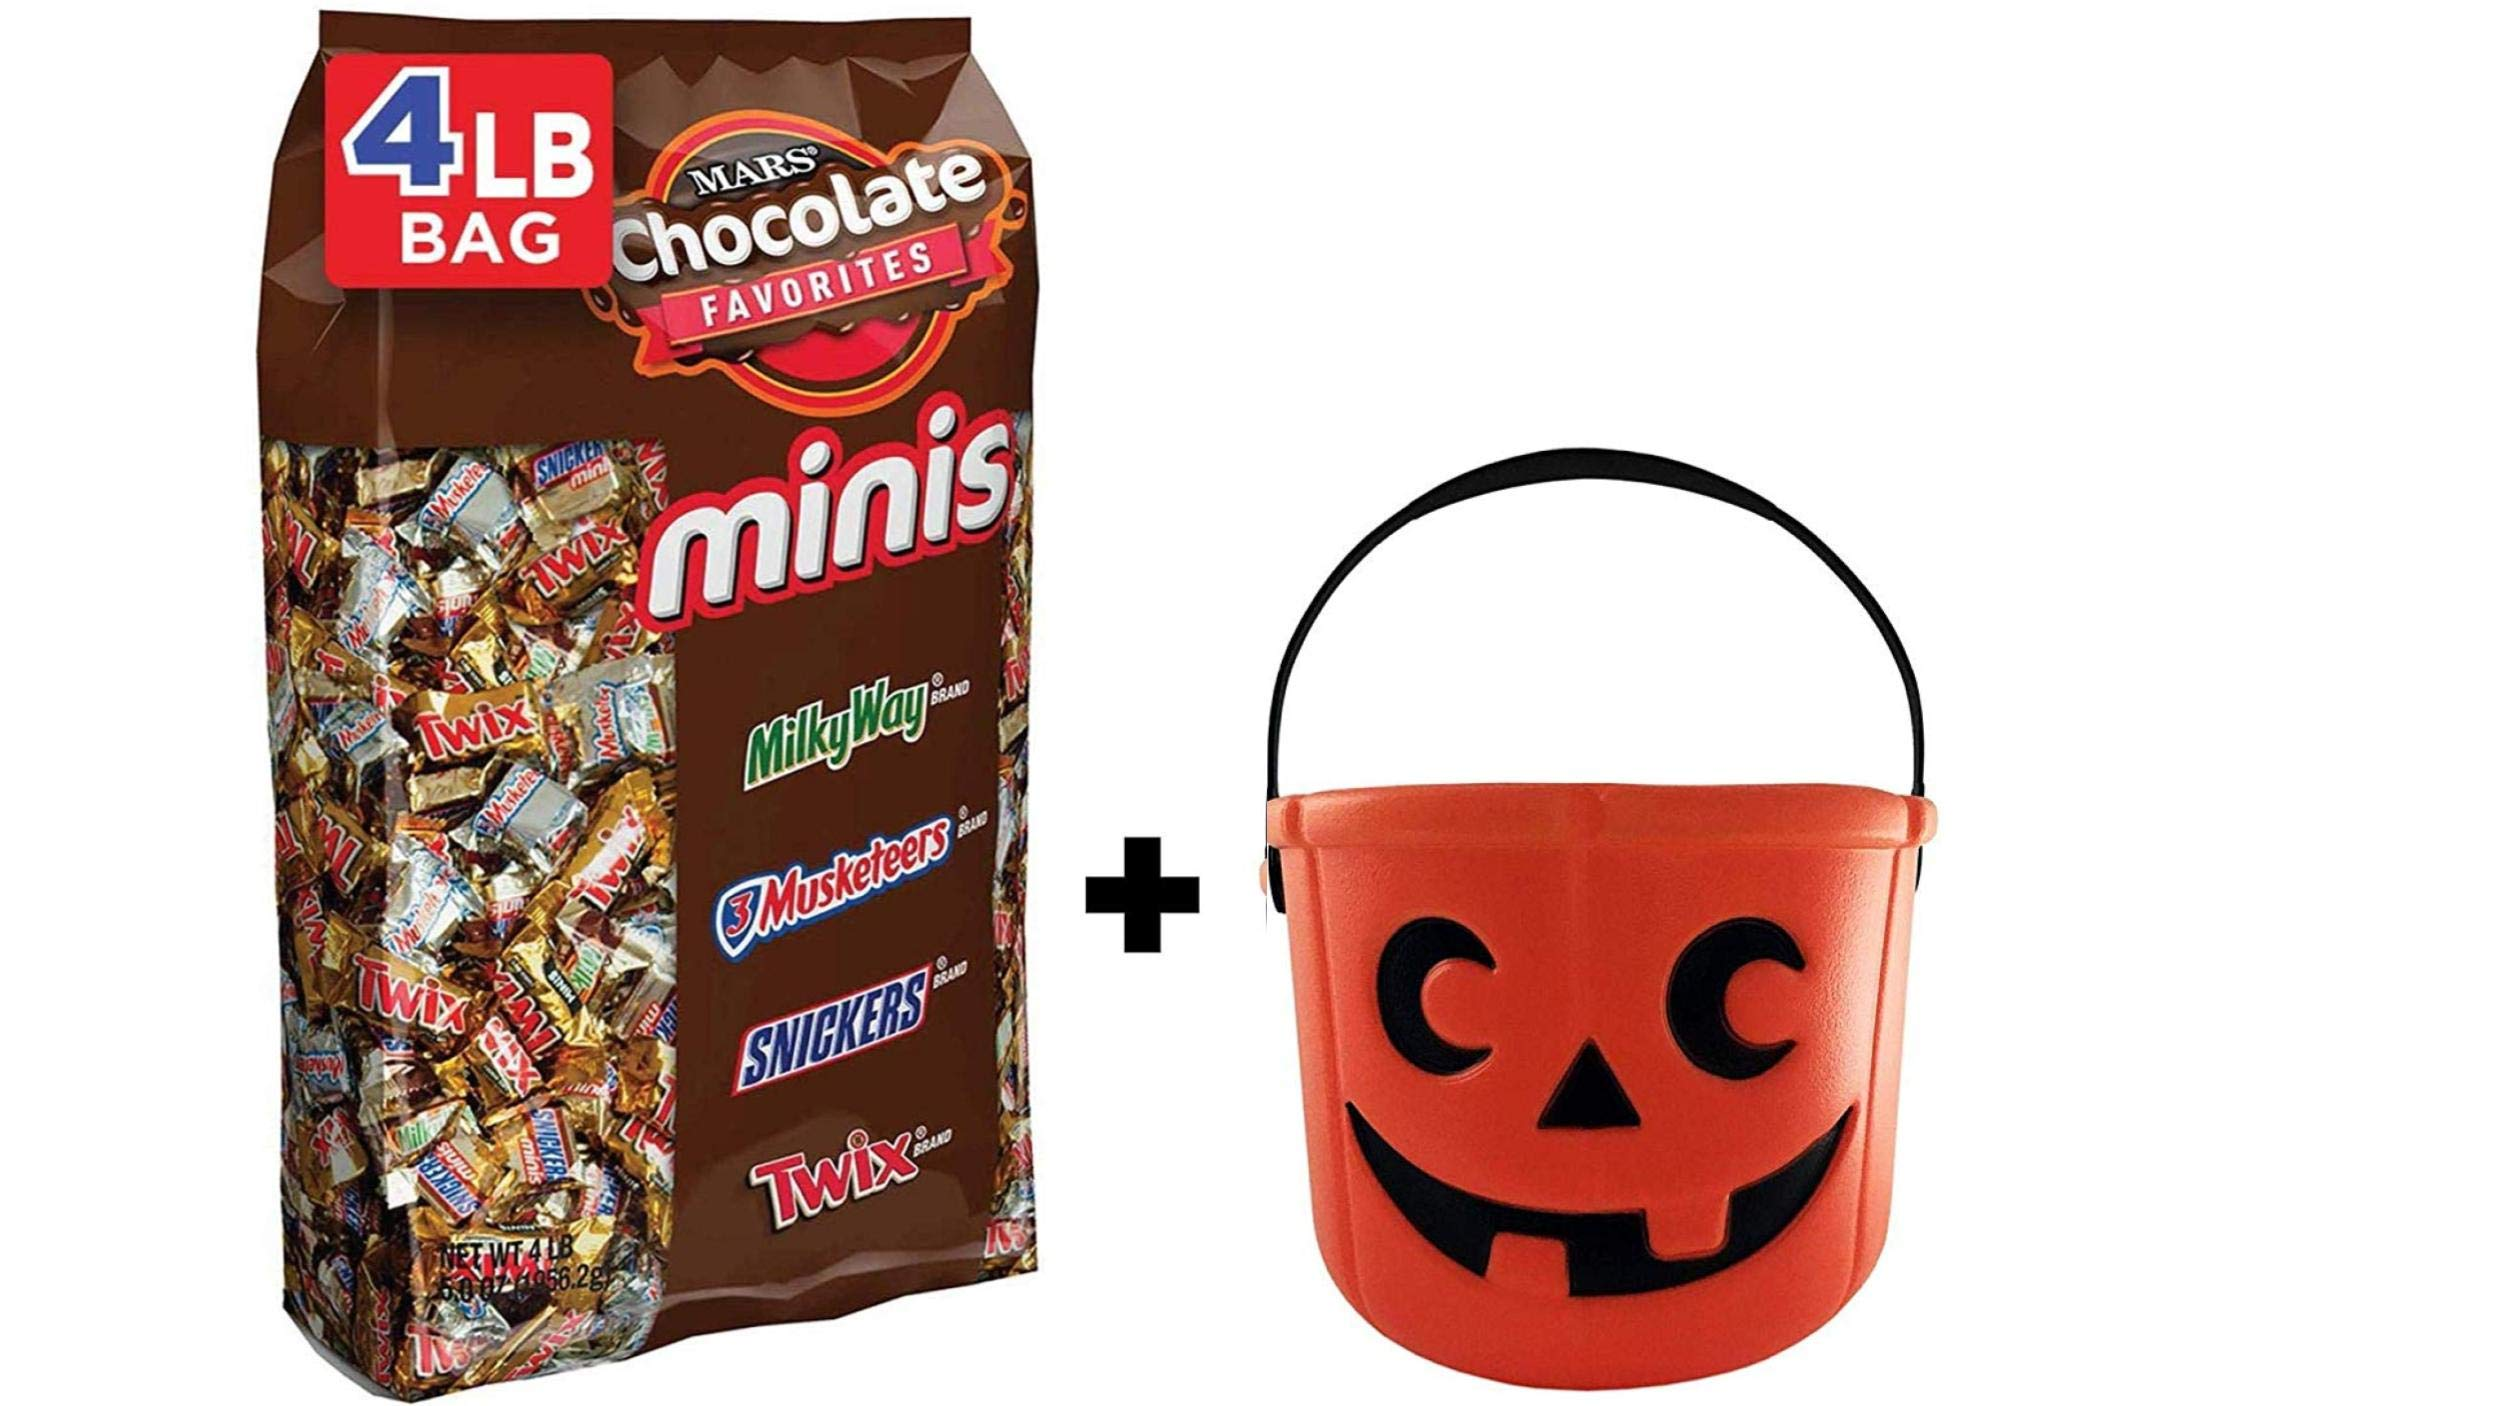 SNICKERS, TWIX, MILKY WAY & 3 MUSKETEERS Minis Size Chocolate Halloween Candy Bars Variety Mix by Mars